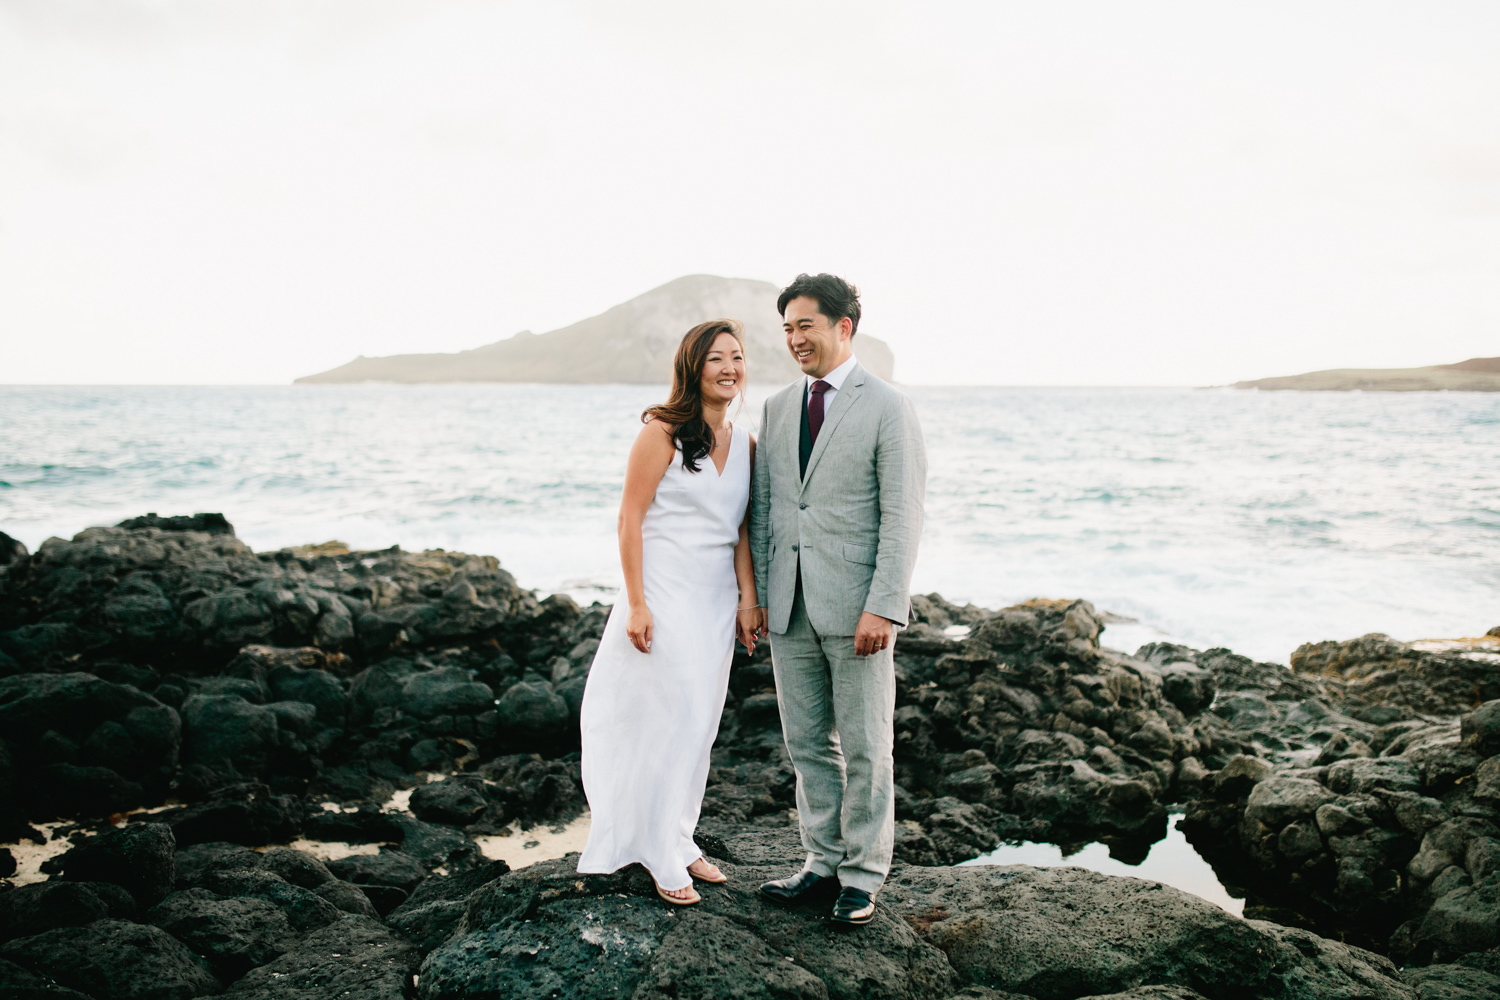 hawaiiweddingphotographer-3042.jpg